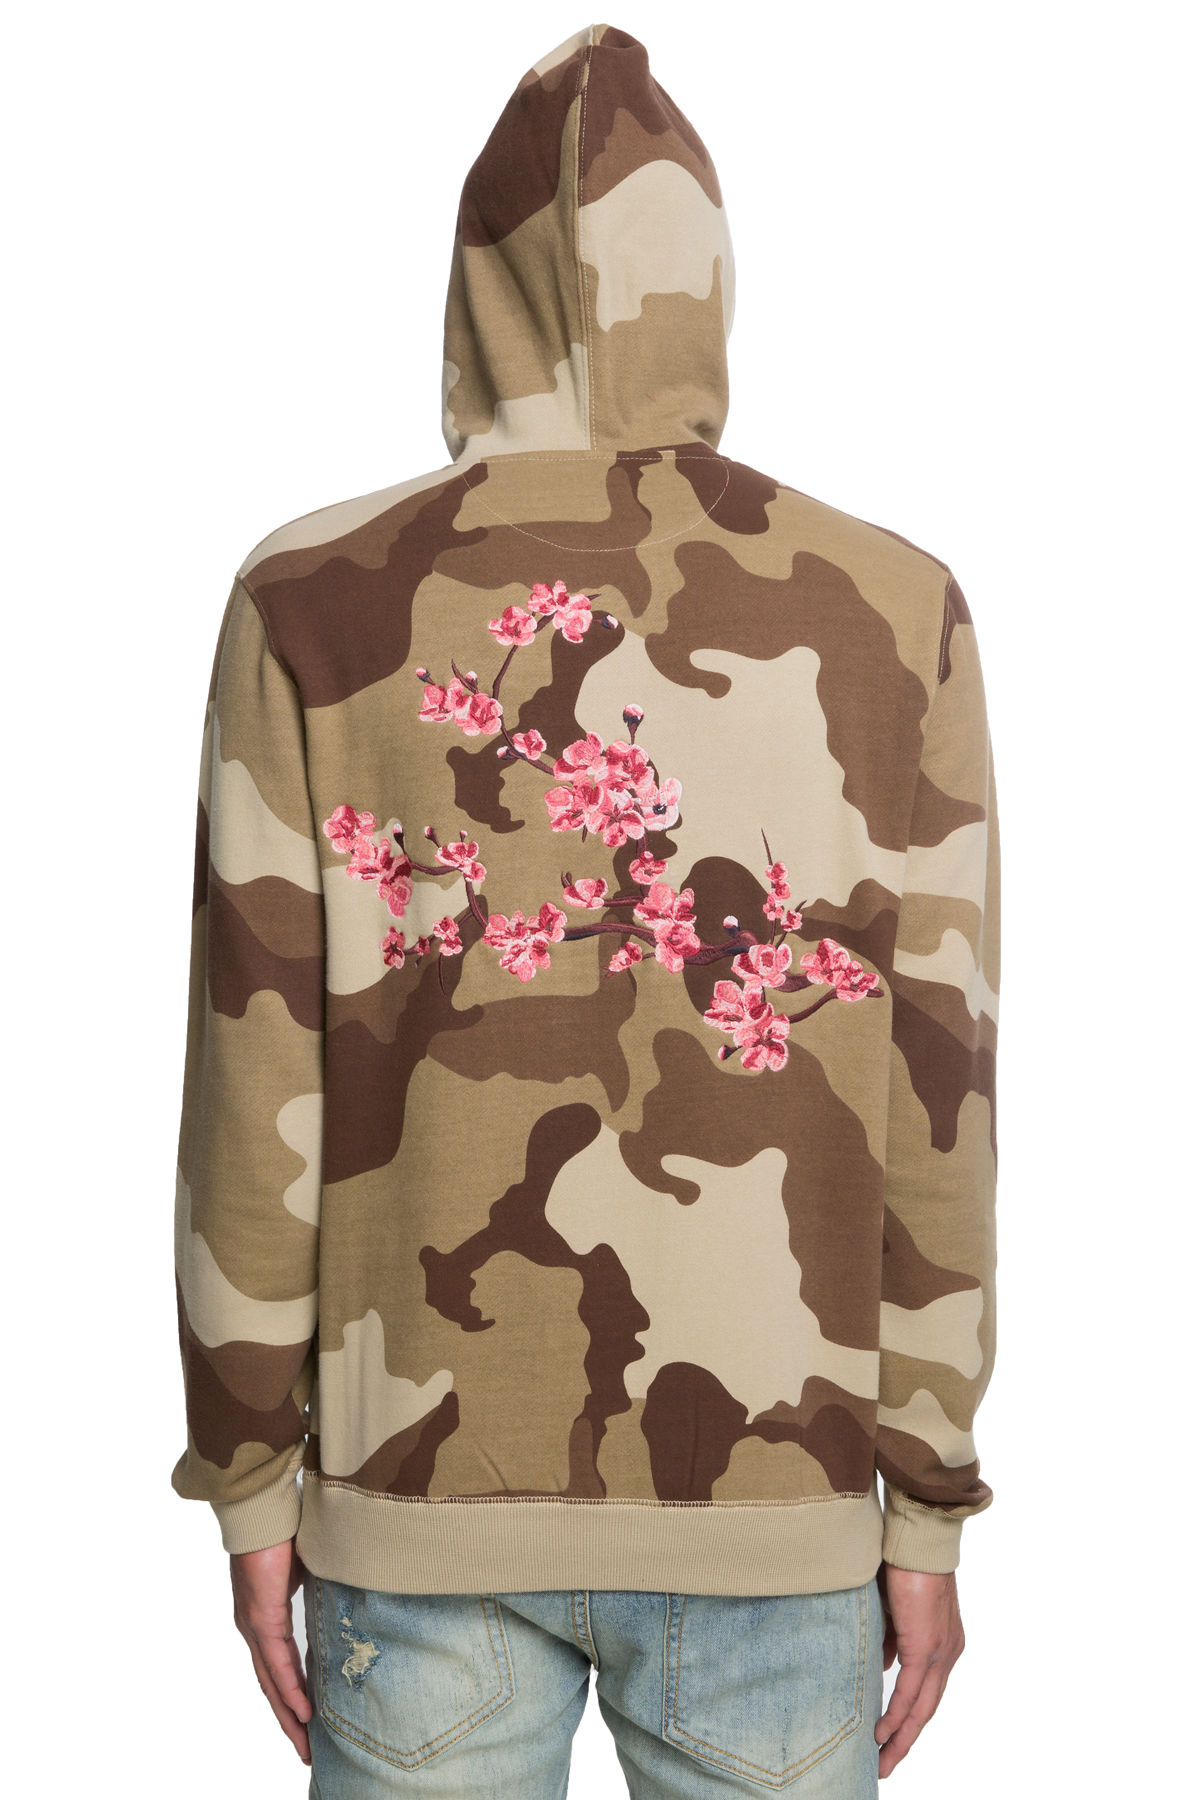 Image of The Dust to Dust Pullover Hoodie in Desert Storm